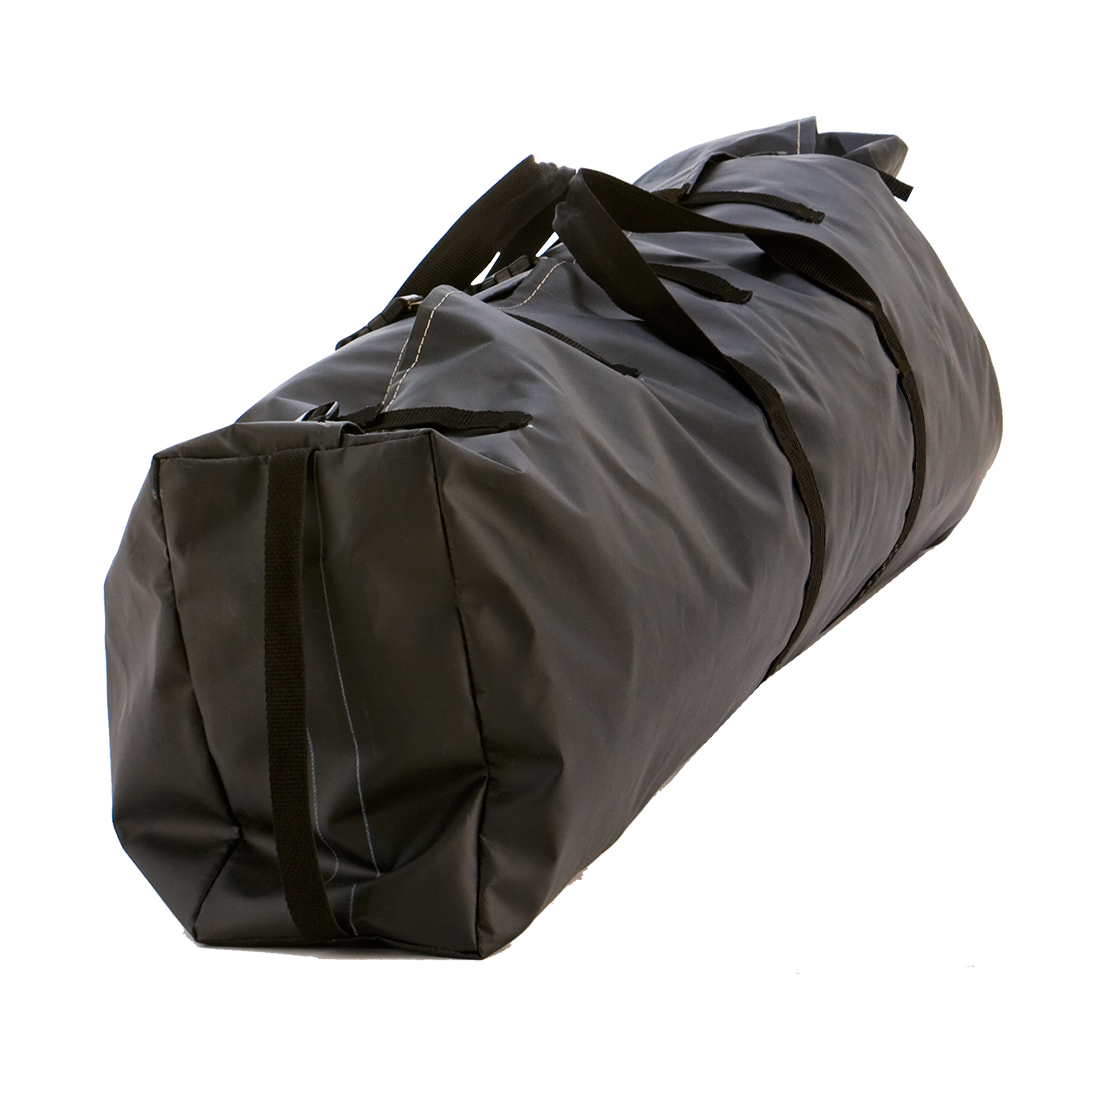 Indestructo Decon Shower Bag image